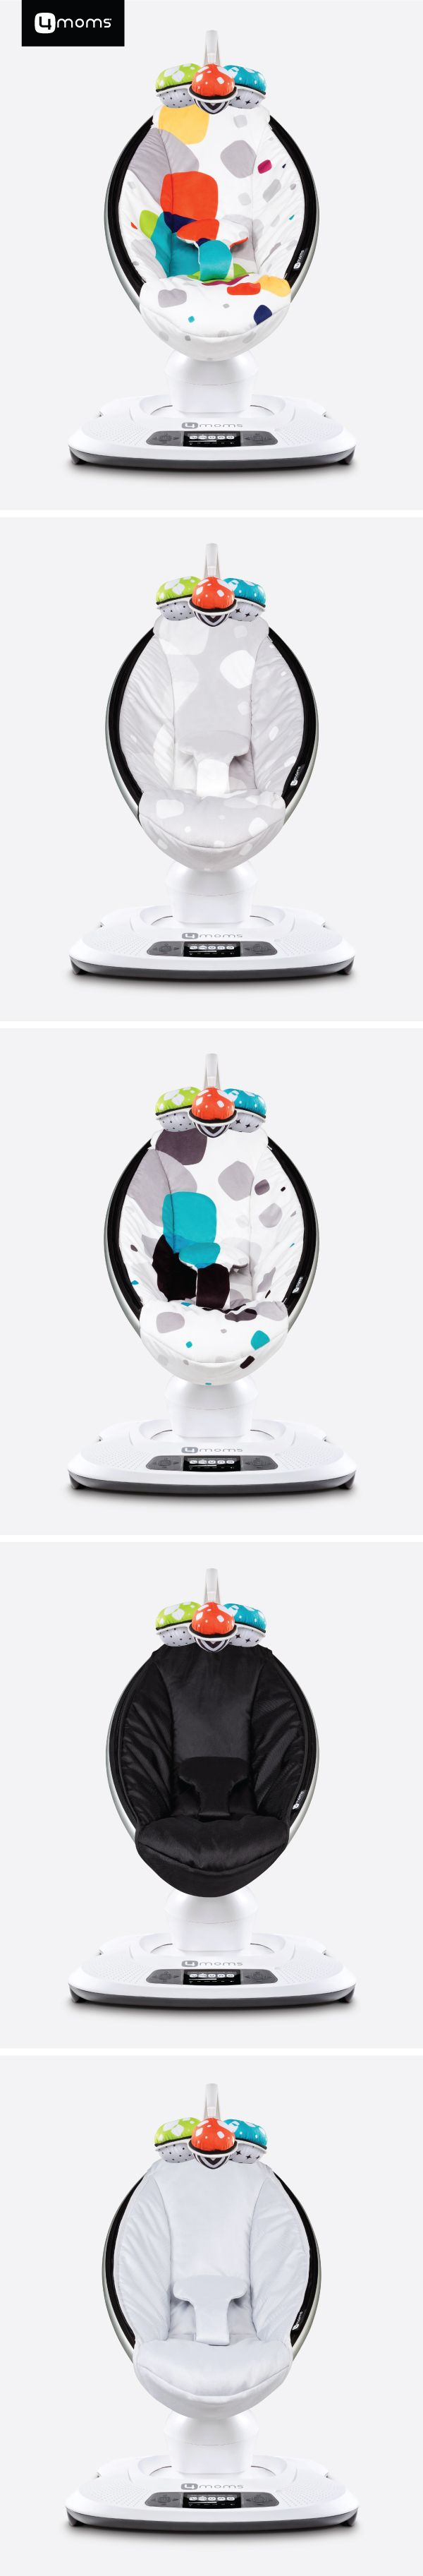 """""""Lifesaver! My second pair of arms."""" The 4moms mamaRoo bounces up and down, and sways side to side just like you do. It soothes and entertains your little one so that you have time to do, well, everything else – it's a new mom must-have. Which color would you choose?"""